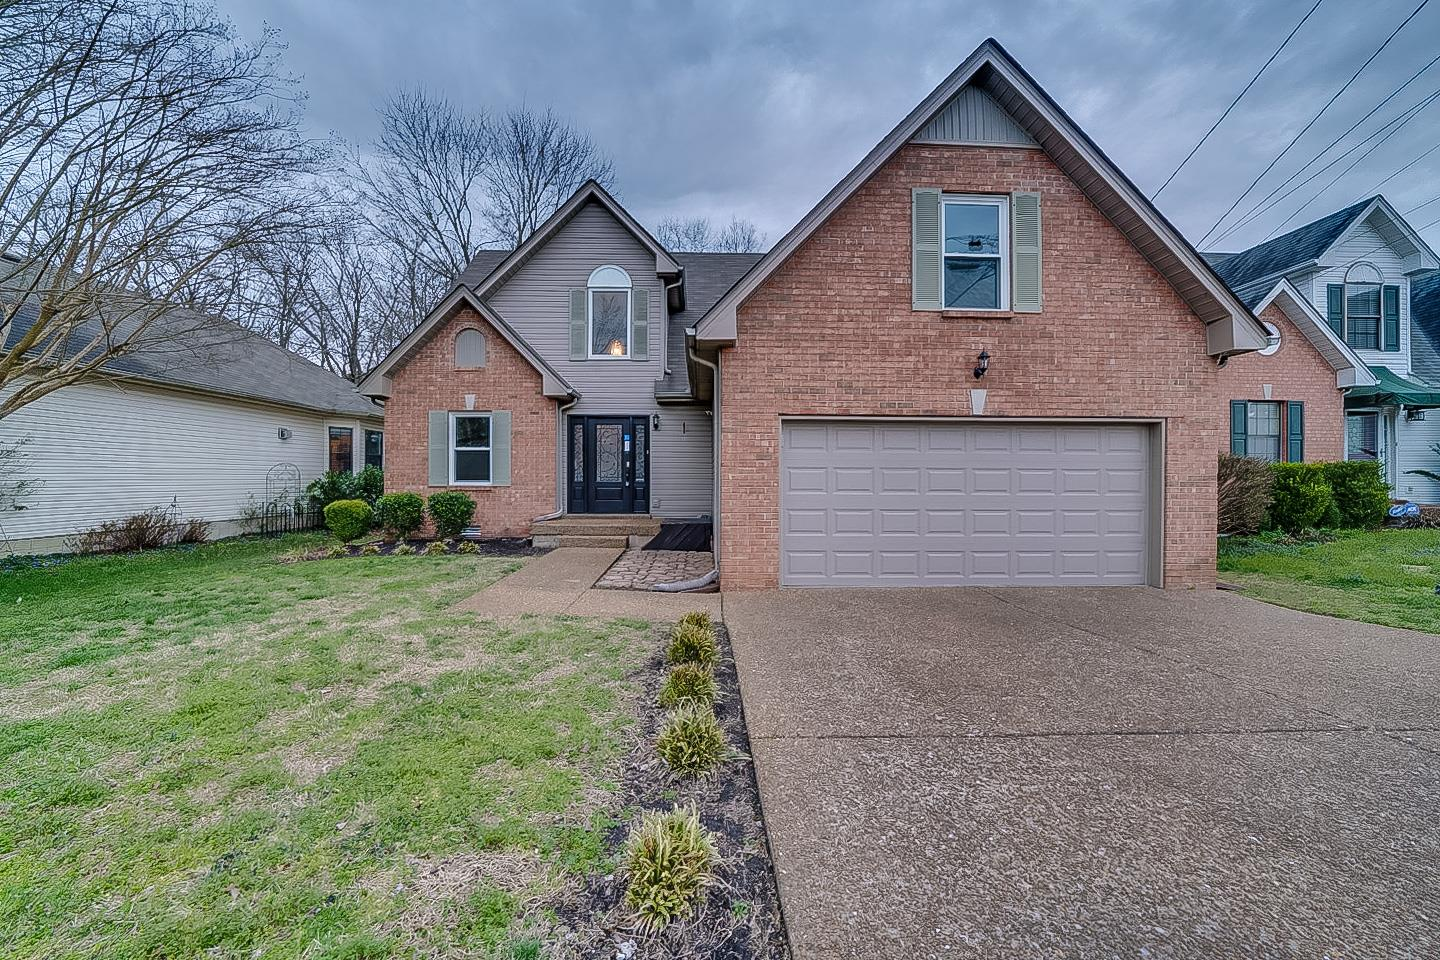 3413 Bridgeton Cv, Nashville-Antioch in Davidson County County, TN 37013 Home for Sale